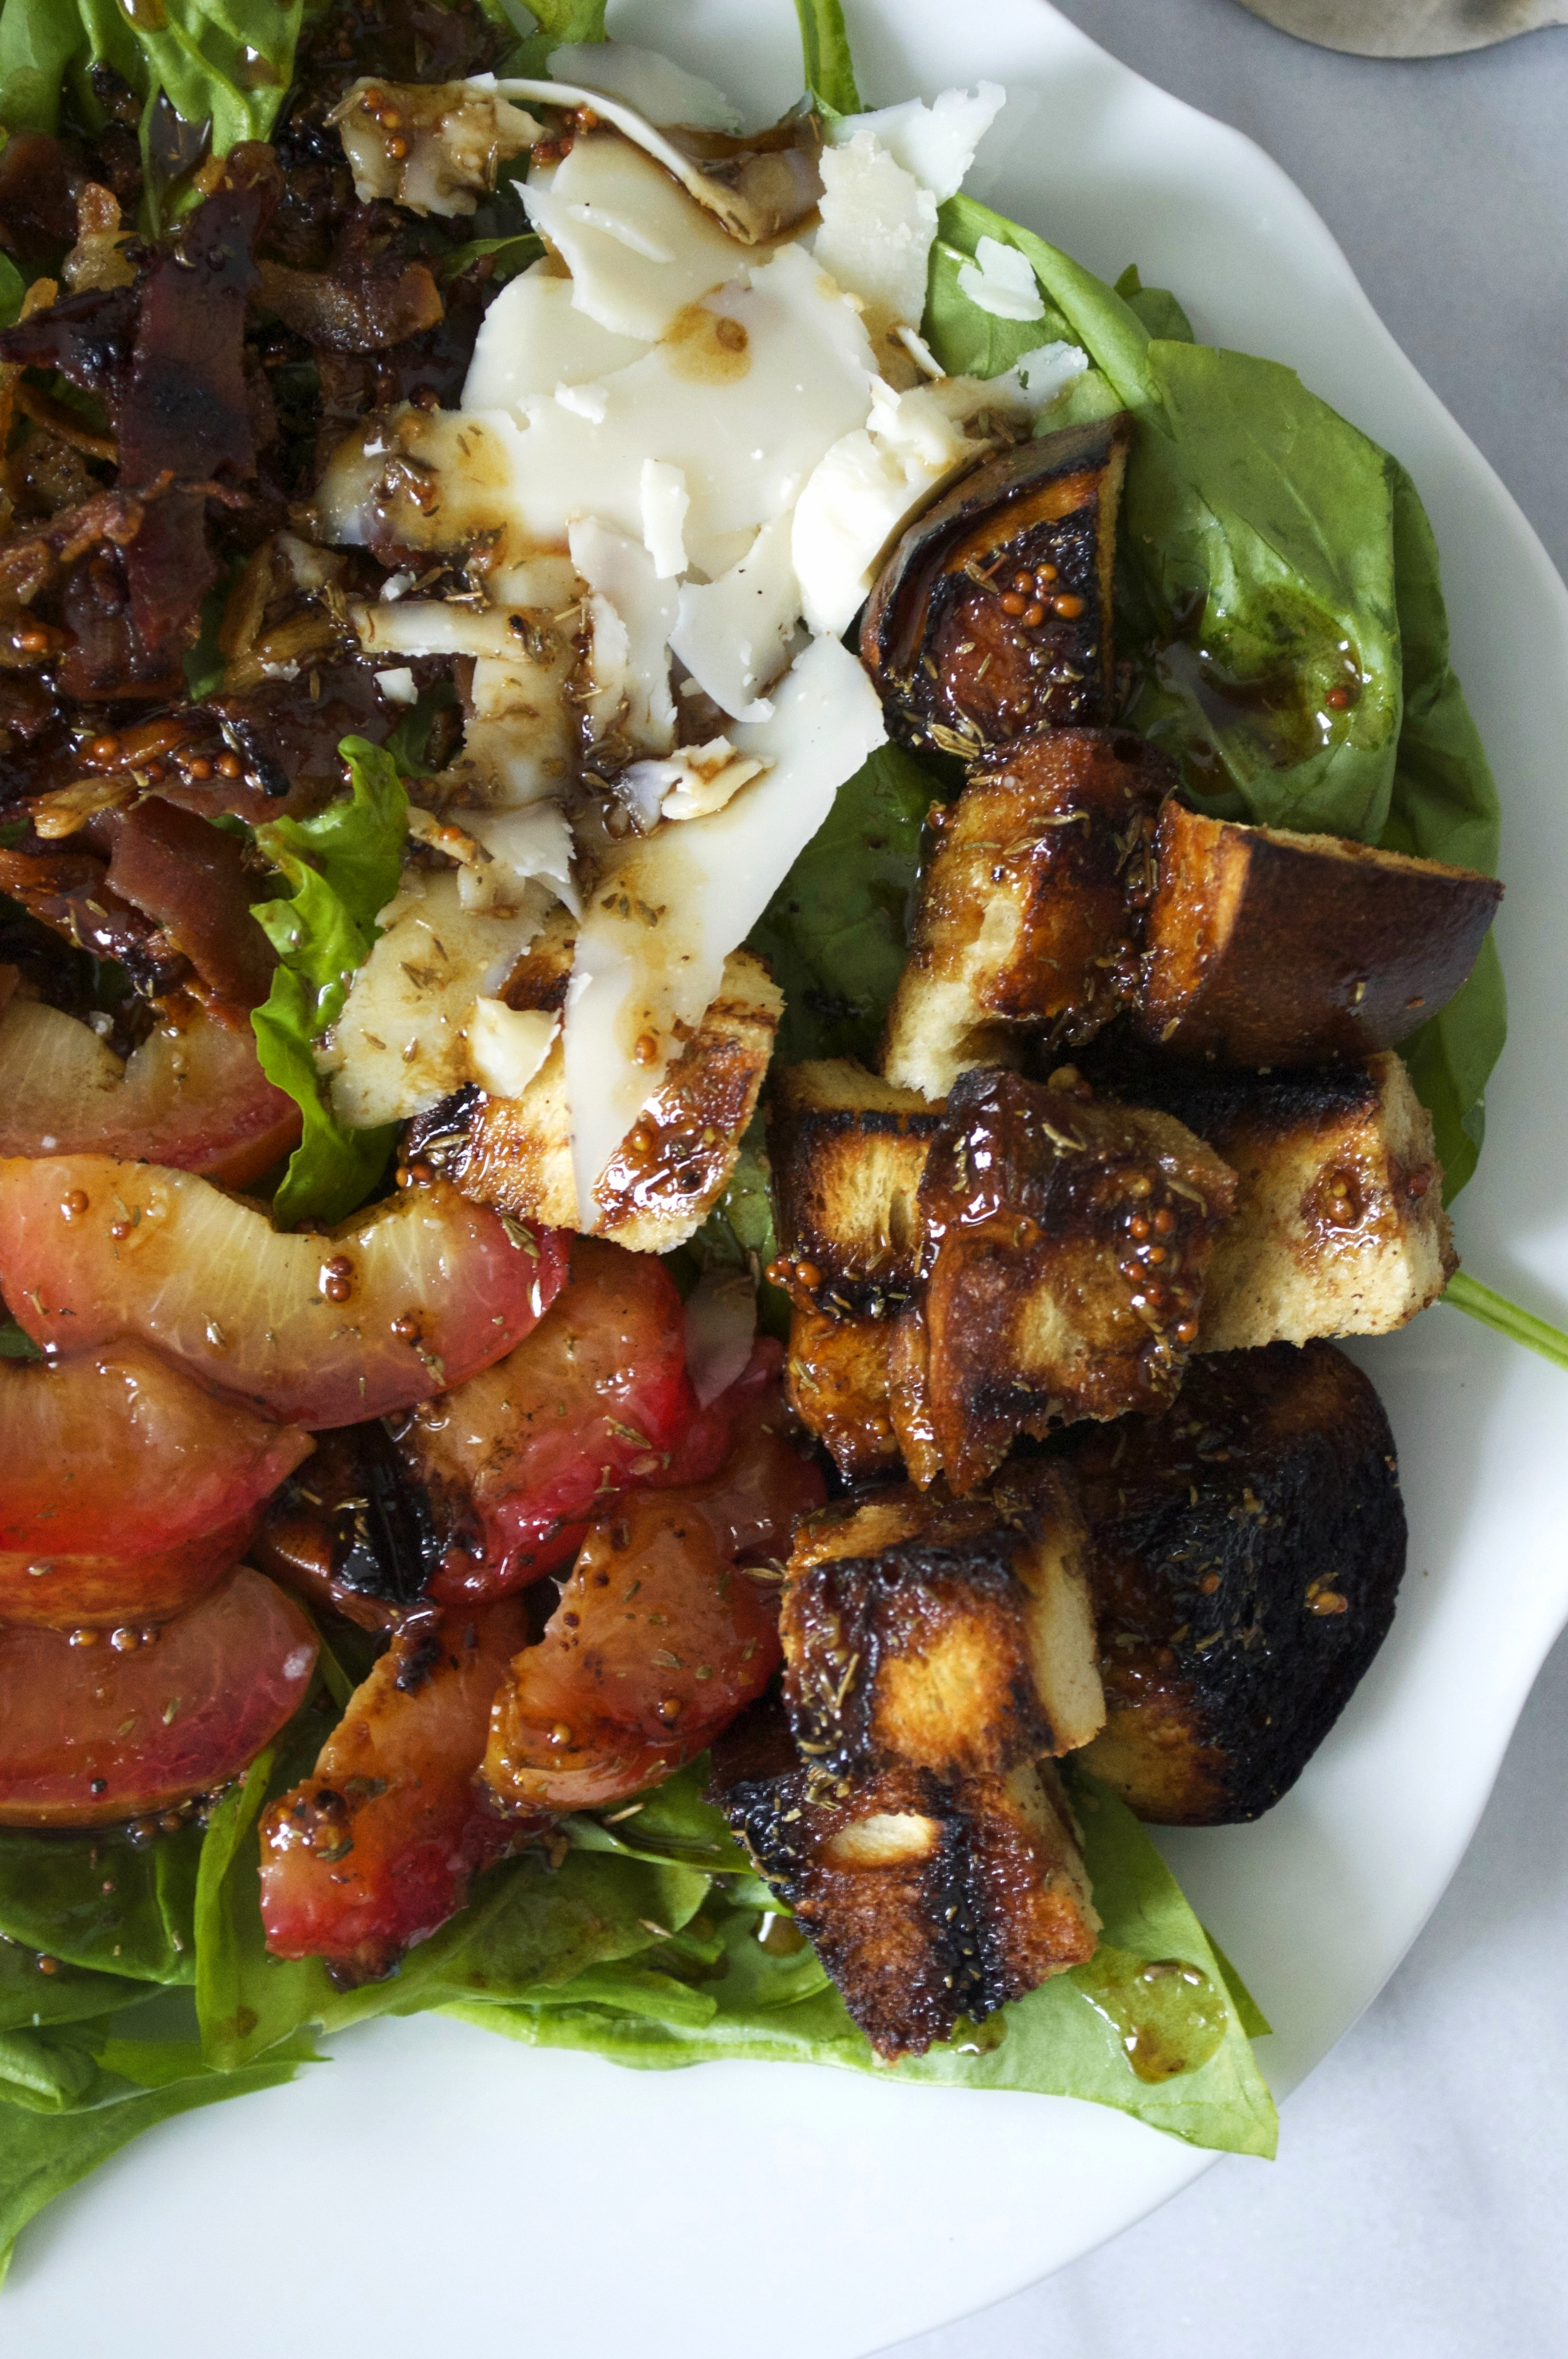 spinach-salad-grilled-plums-challah-croutons-final-closeup-molasses-and-mayhem.jpg